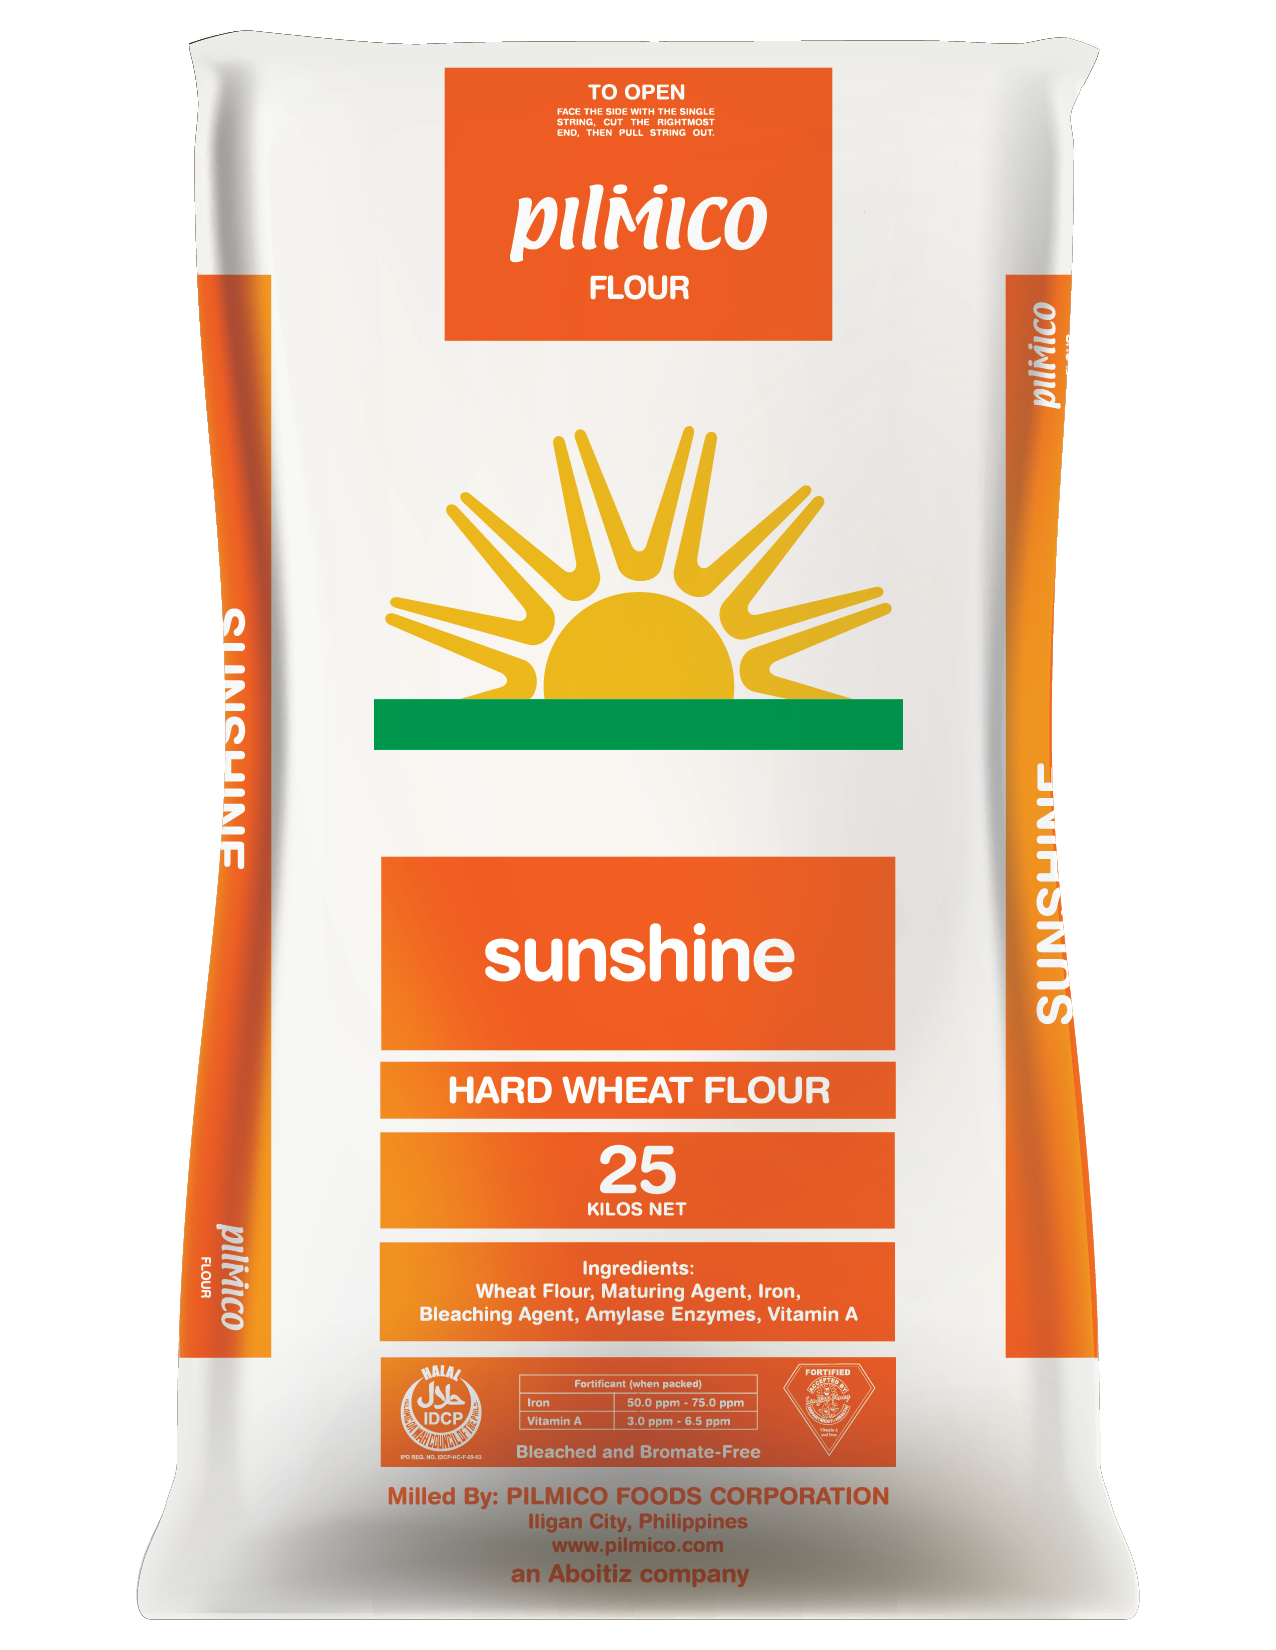 Pilmico Flour Sack 2018 - Sunshine Hard Wheat Flour 25kg